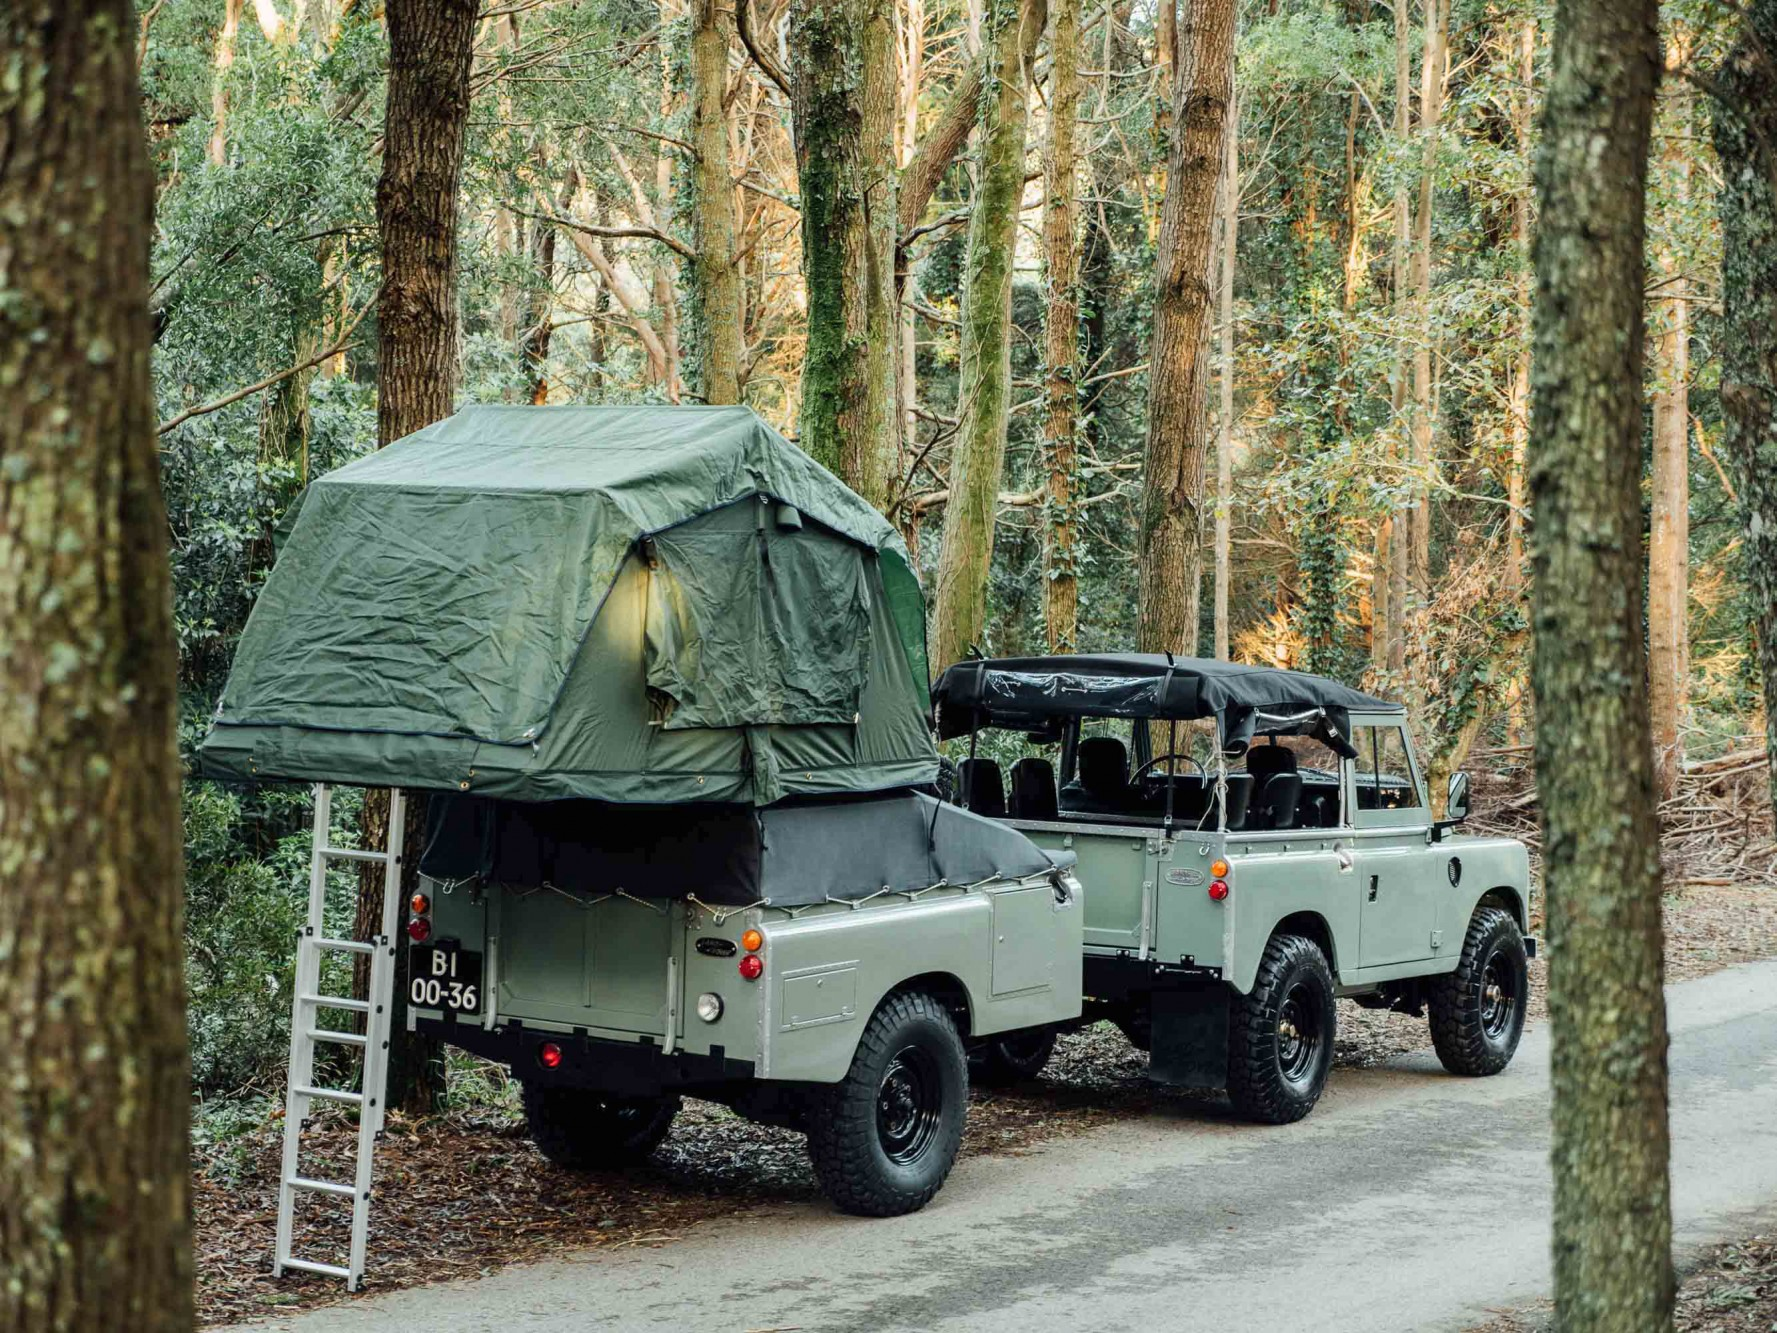 Featured Vehicle 1982 Land Rover Series III with Adventure